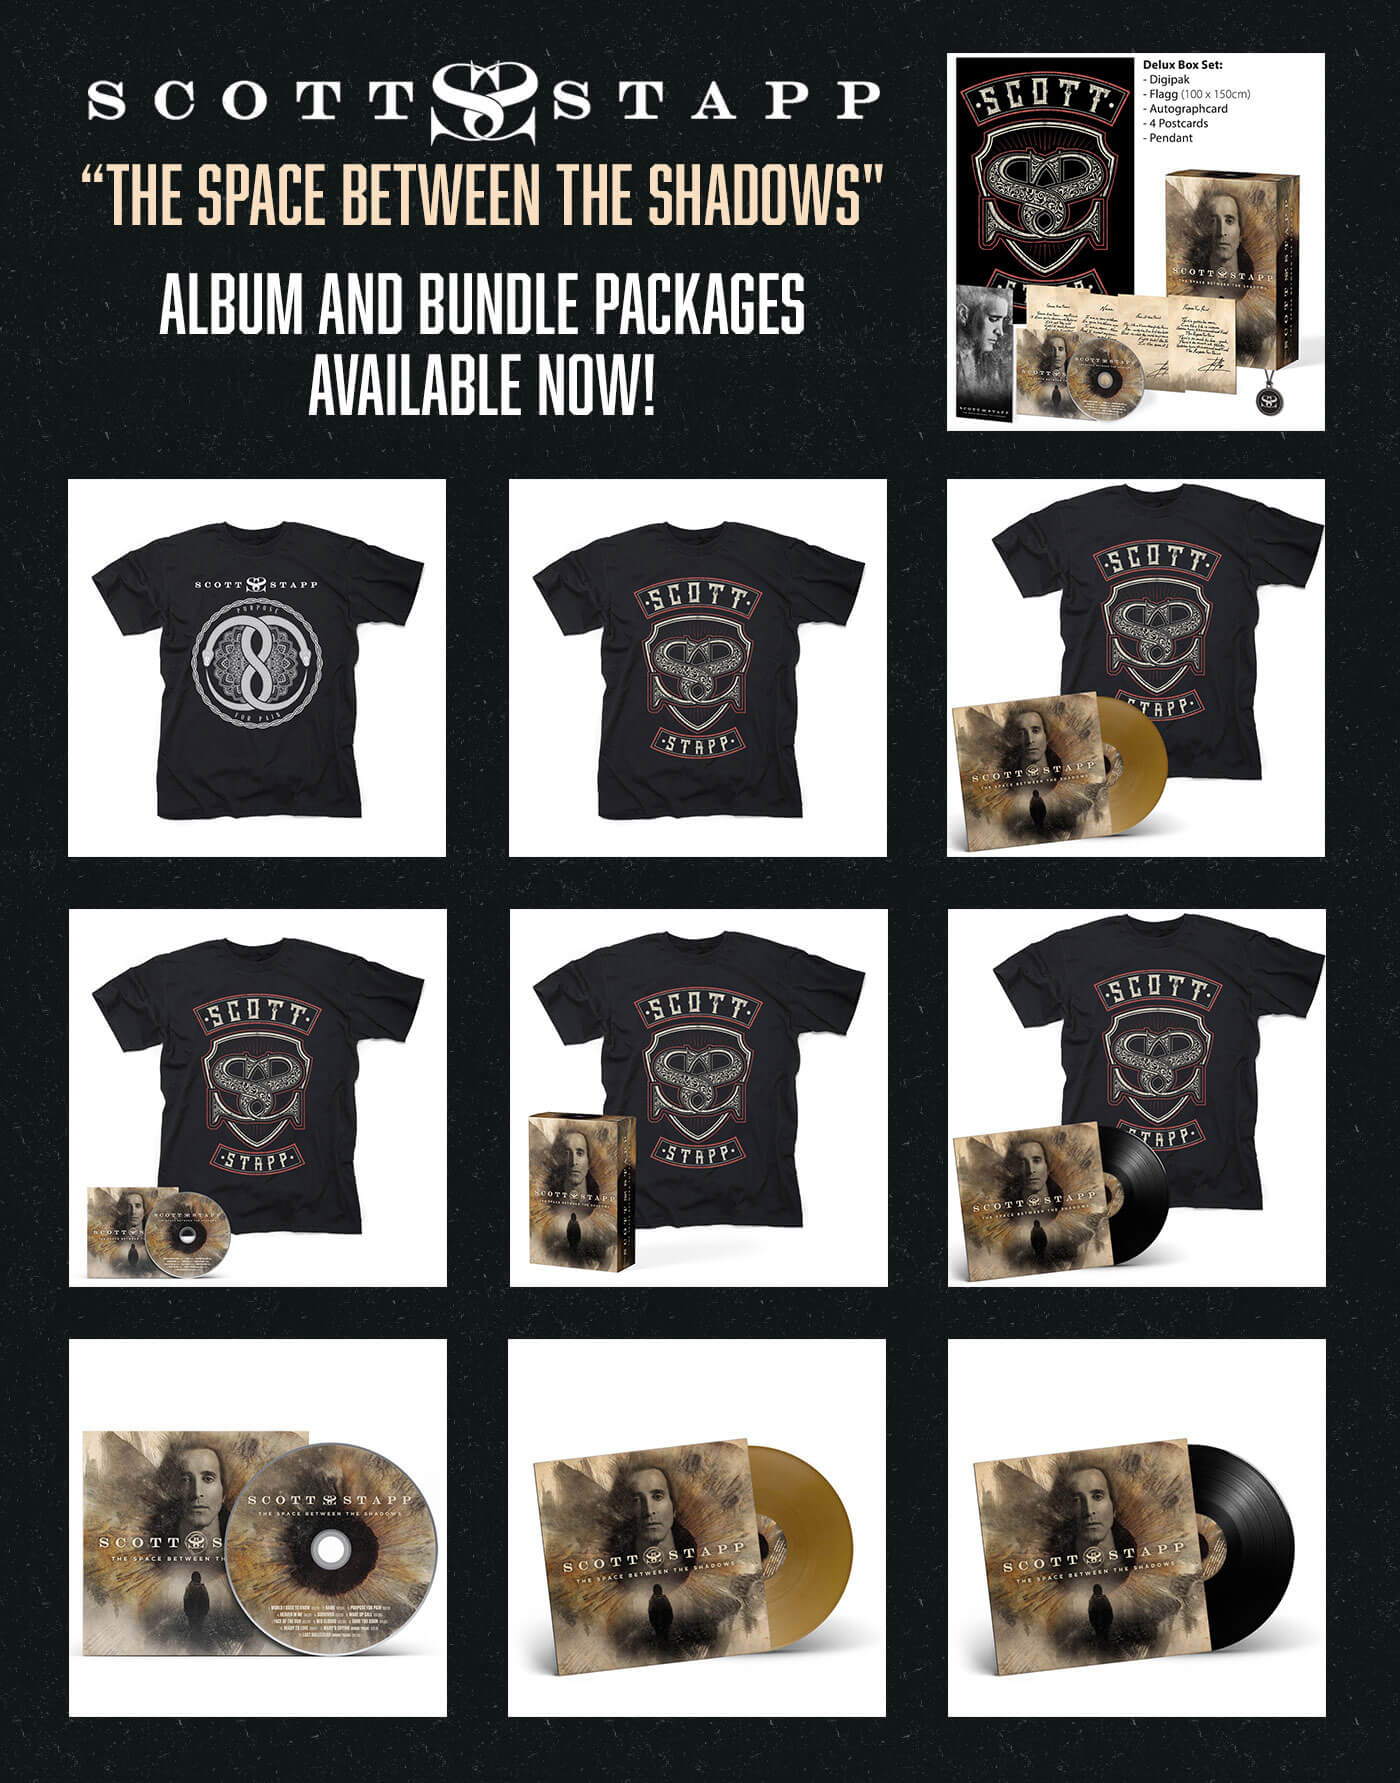 Album Bundles Available Now